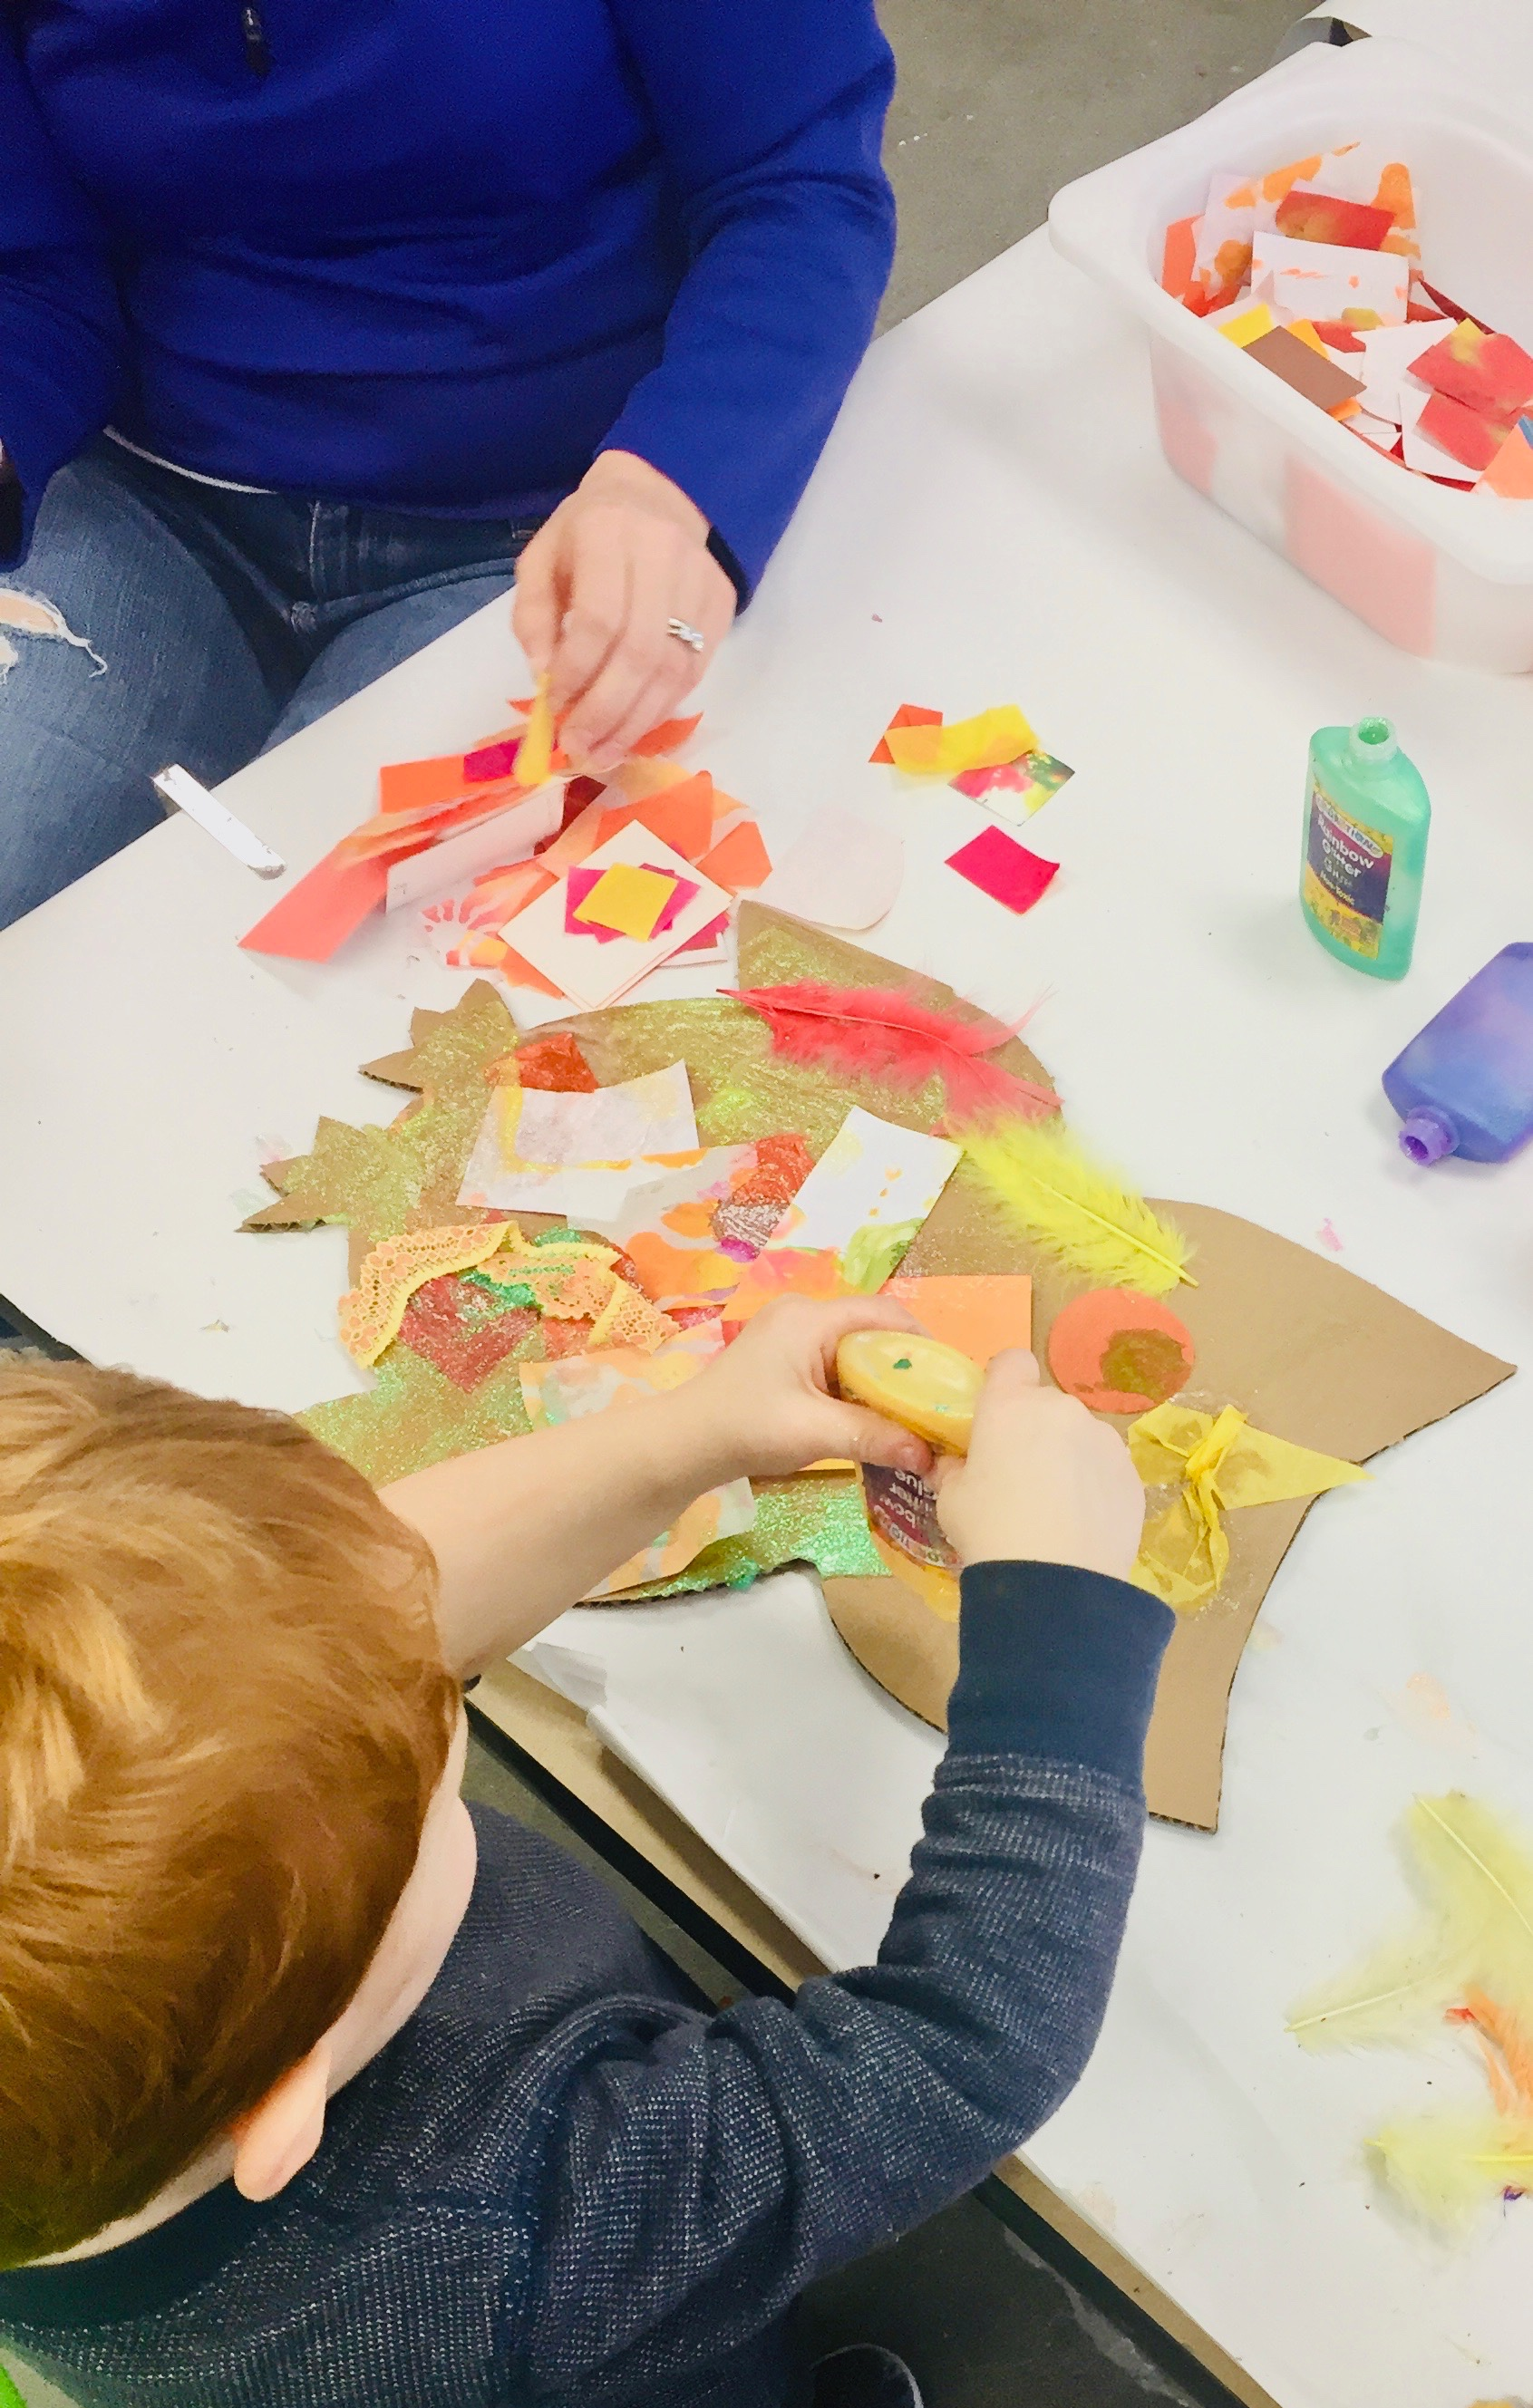 Owl preschool mixed media art using collage materials and  glitter glue